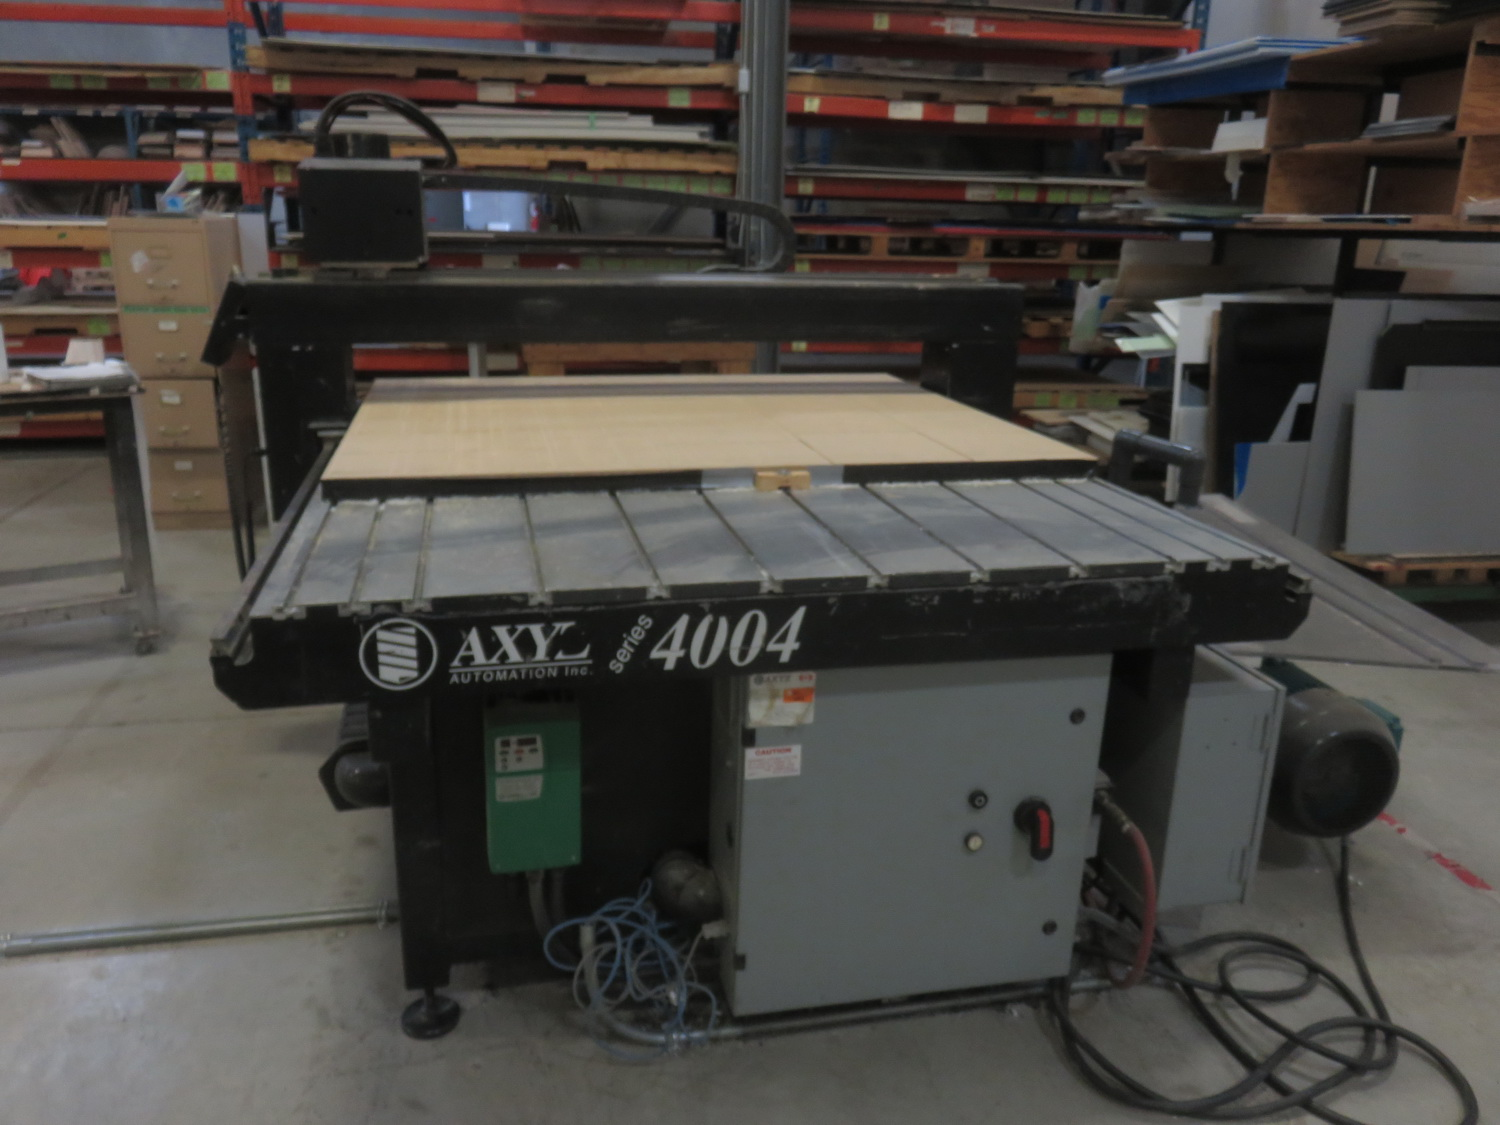 """AXYZ MODEL 4004 CNC ROUTER W/ 2004 BECKER VTLF 250 SK VACUUM PUMP, ES915 ROUTER & 72"""" X 60"""" TABLE - Image 3 of 8"""